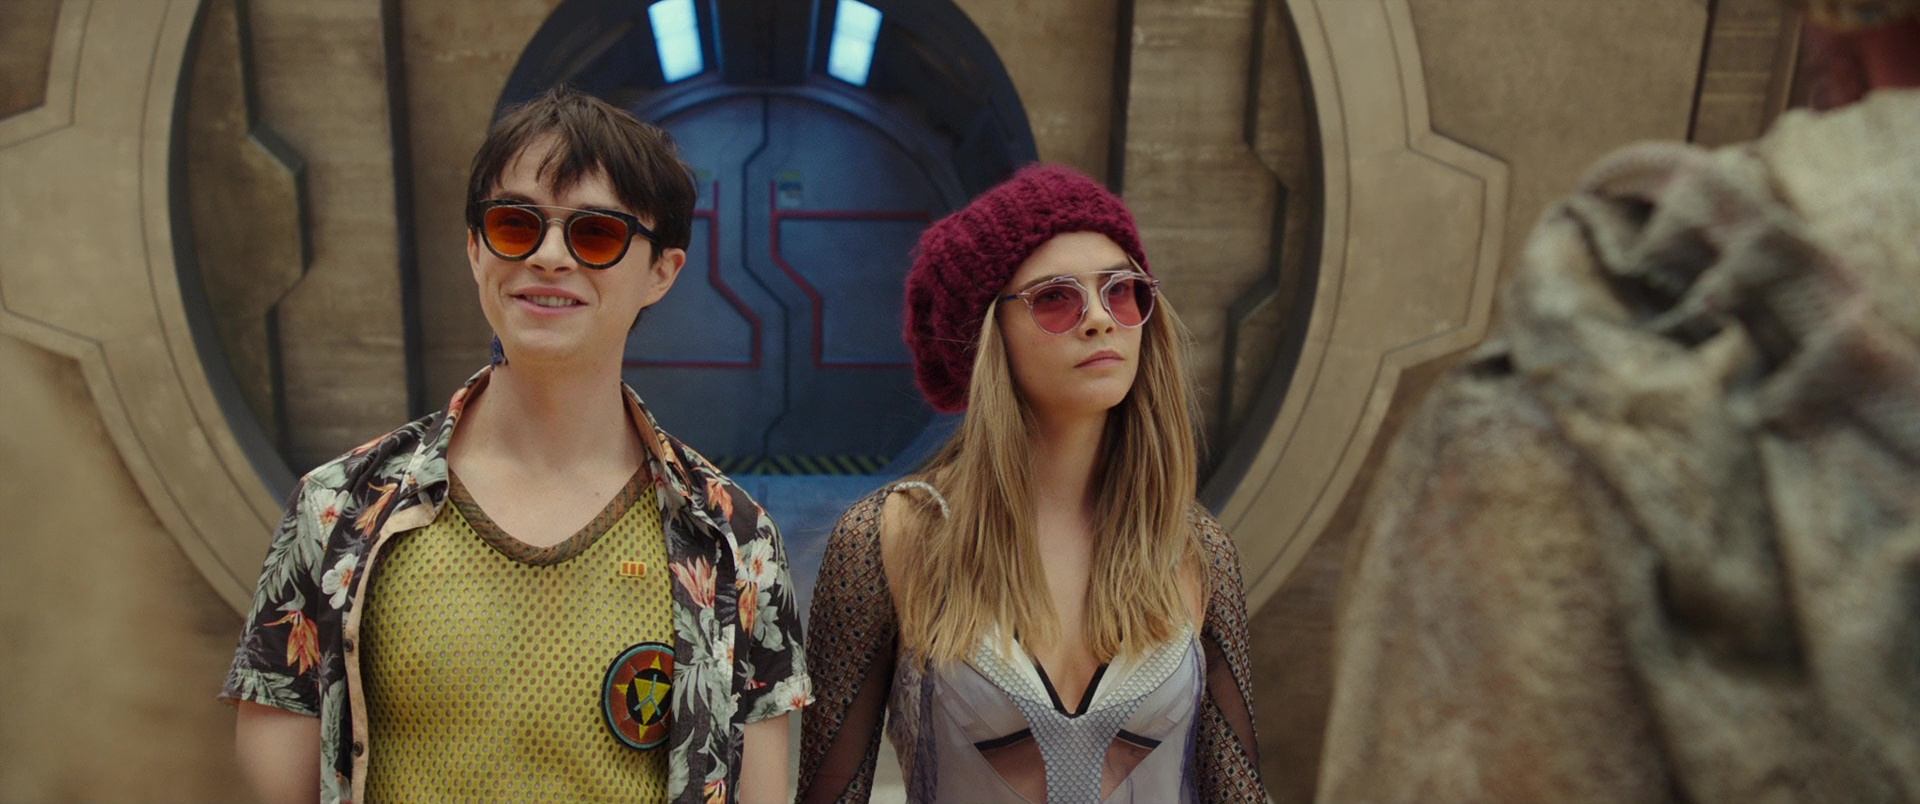 e20059129a6 Dior So Real Sunglasses Worn by Cara Delevingne in Valerian and the City of  a Thousand